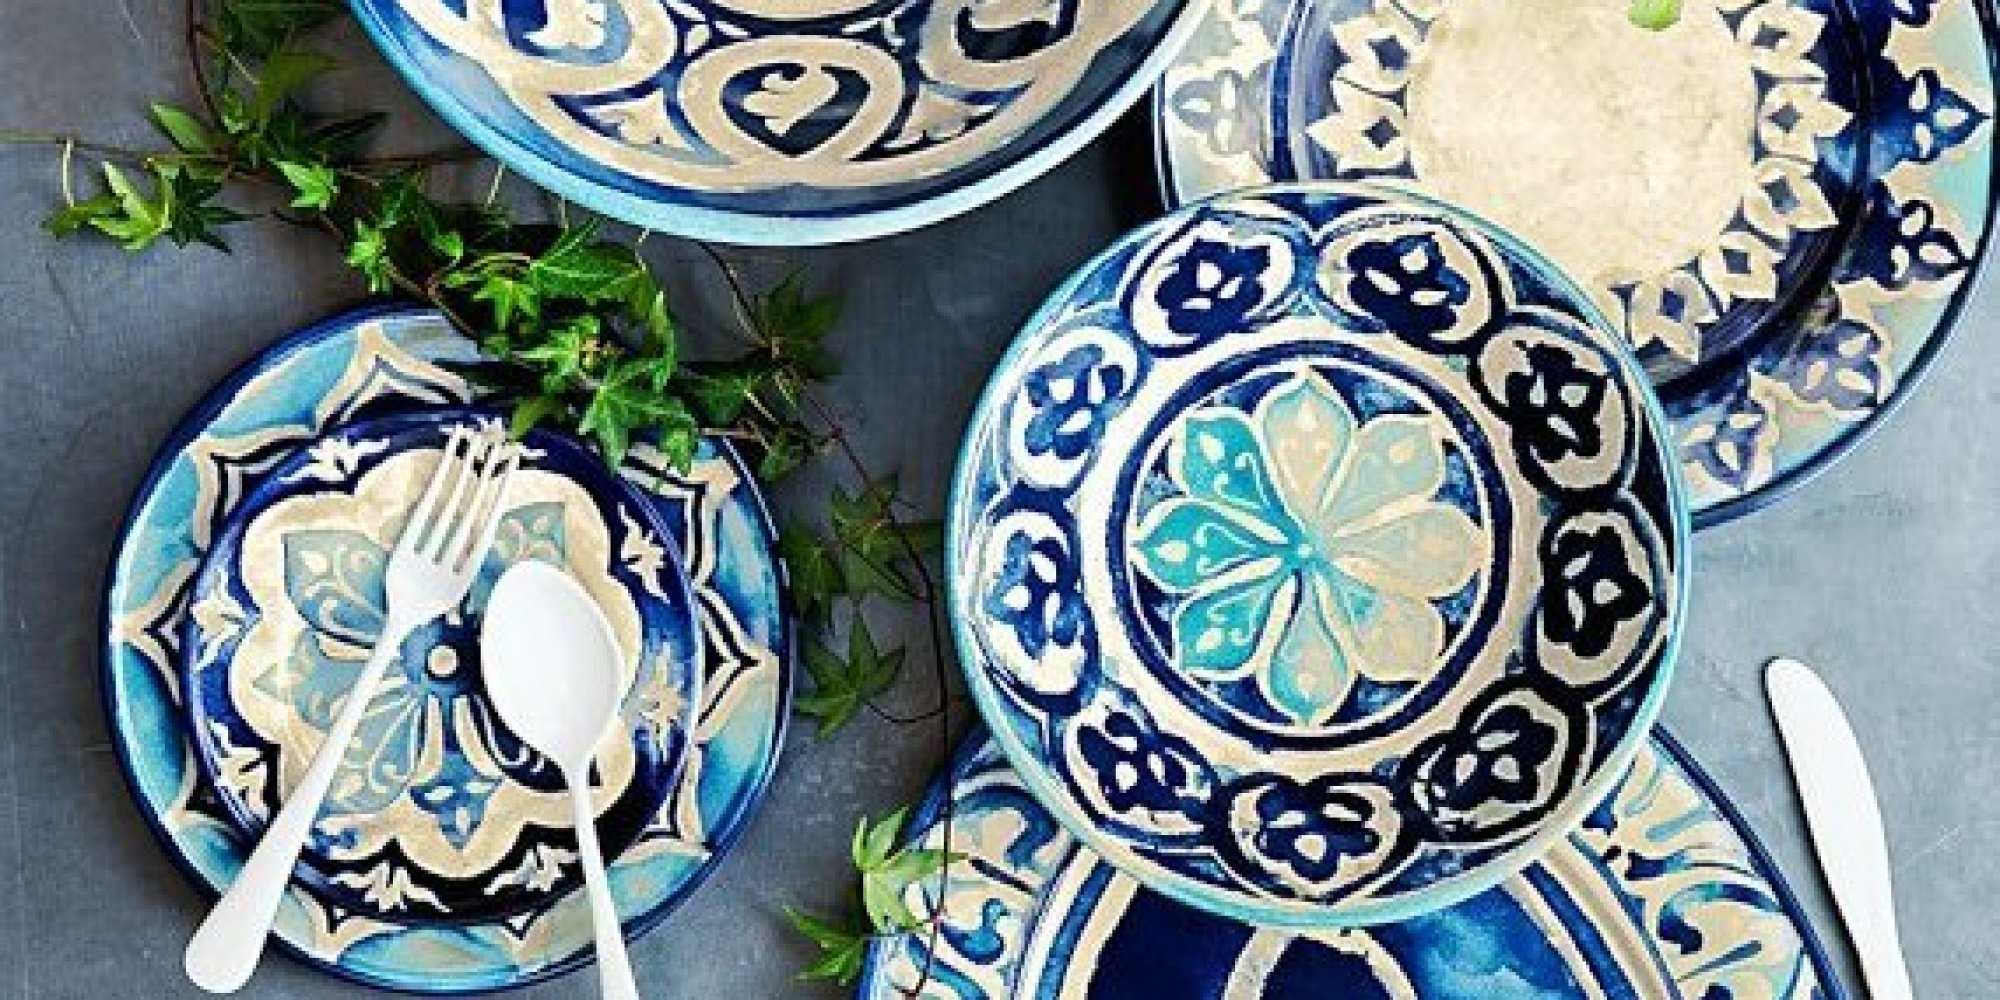 10 Surprisingly Stylish Reasons To Upgrade From Paper Plates To Melamine Dinnerware (PHOTOS) | HuffPost & 10 Surprisingly Stylish Reasons To Upgrade From Paper Plates To ...